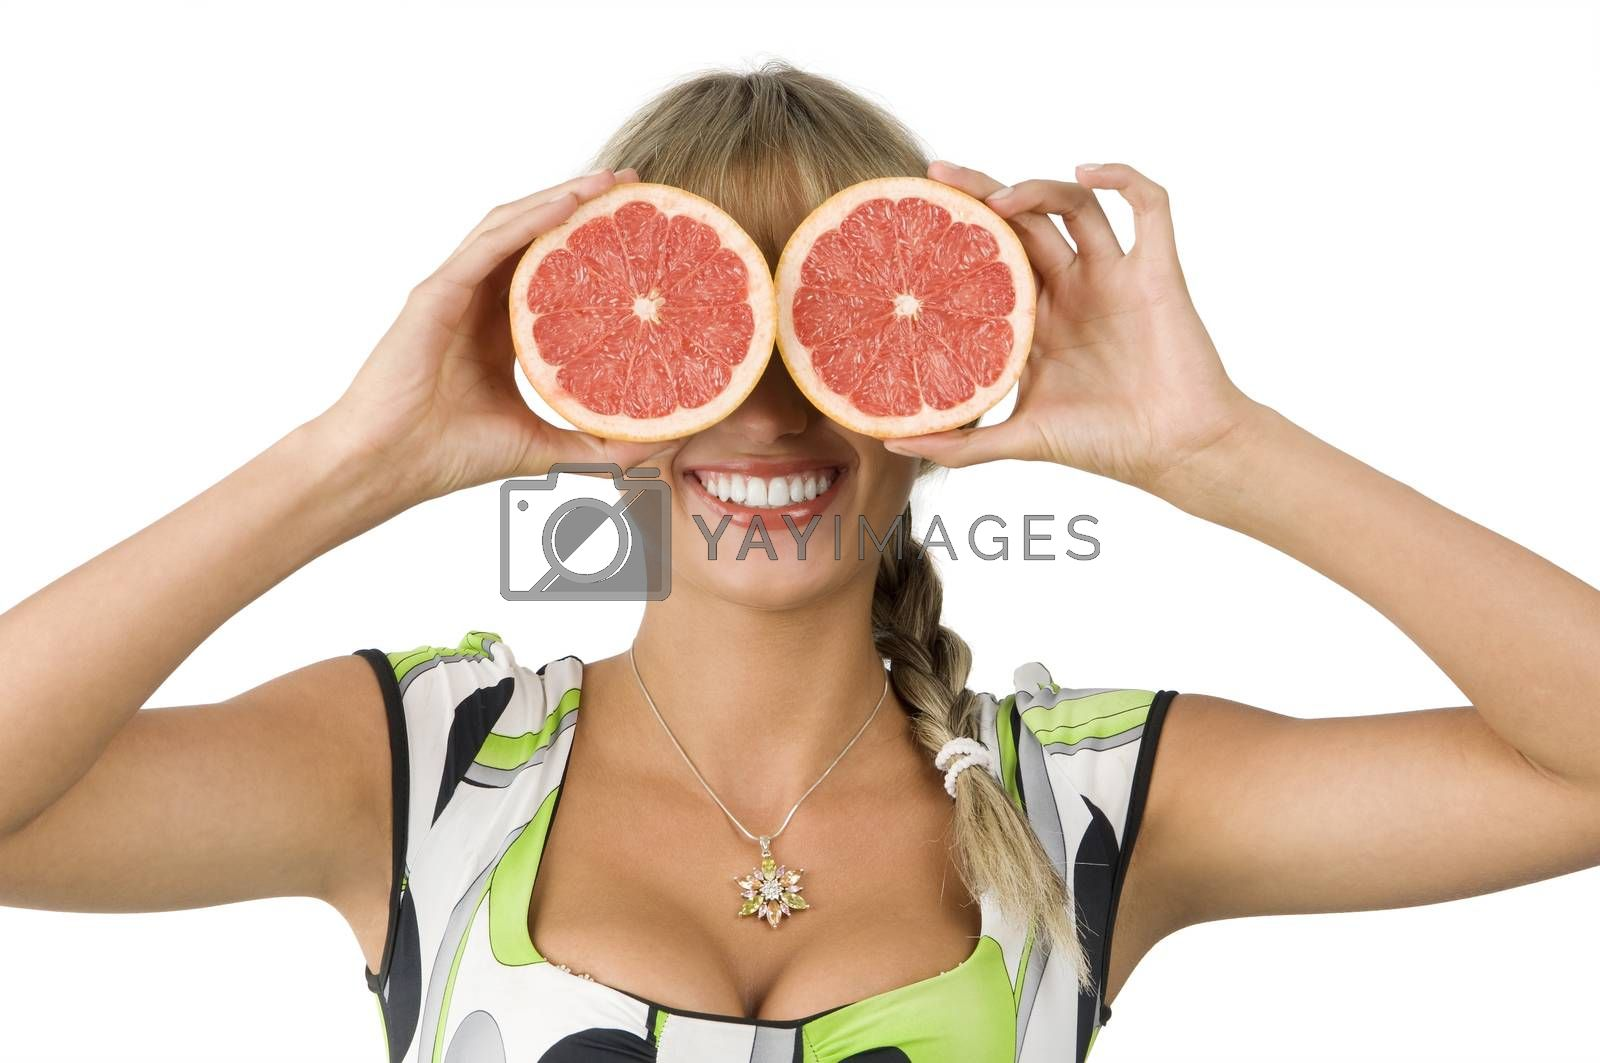 Royalty free image of glasses grapefruit by fotoCD